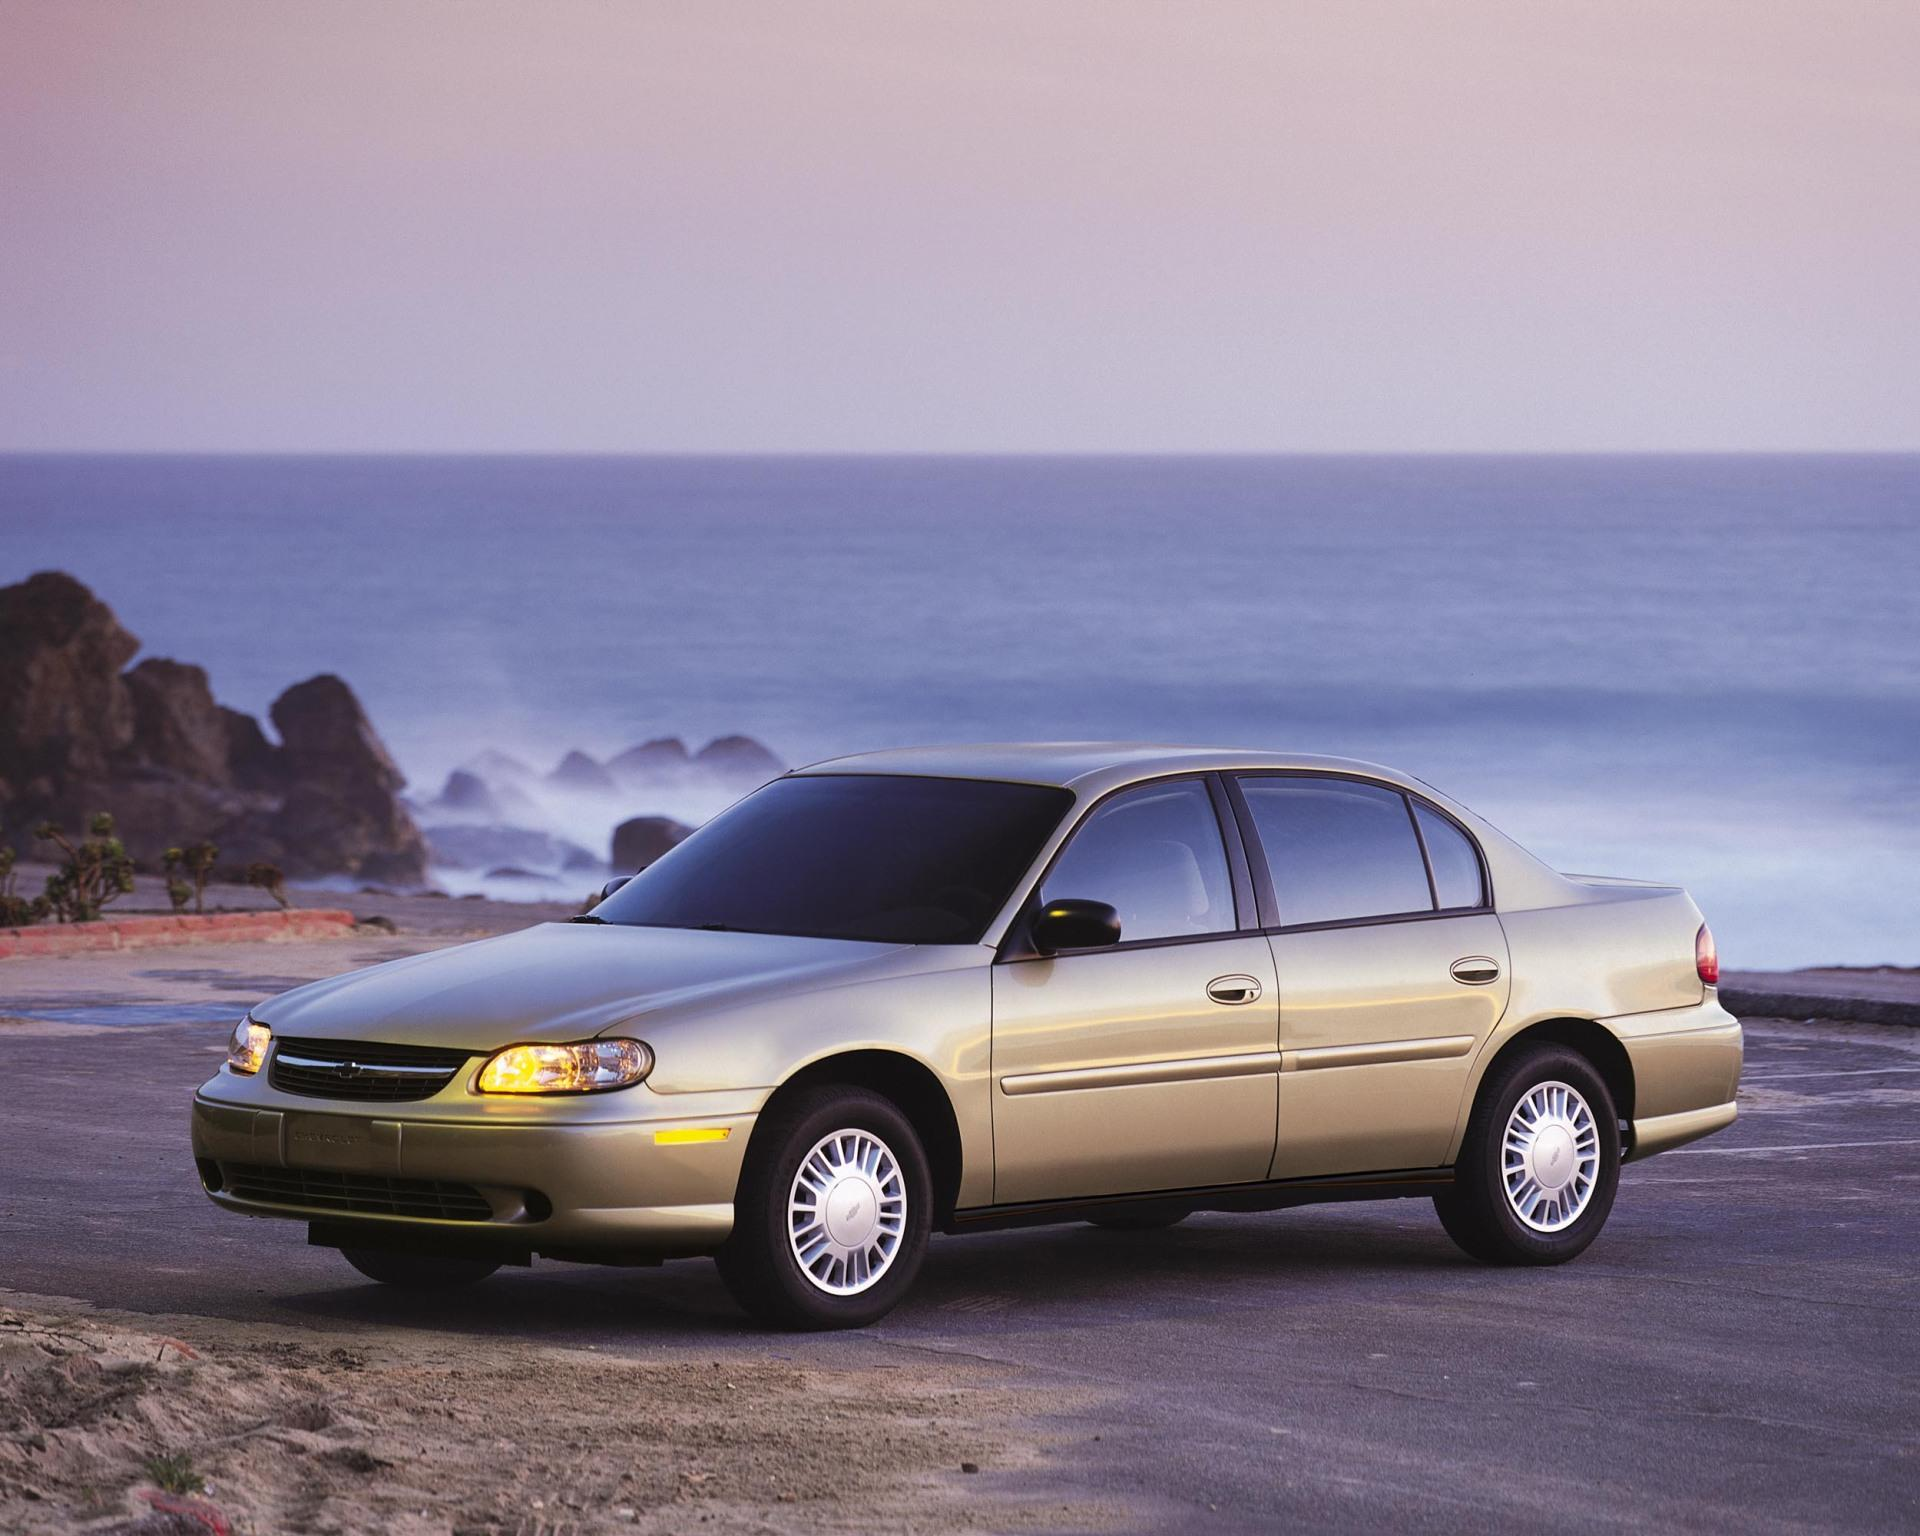 2001 Chevrolet Malibu Pictures History Value Research